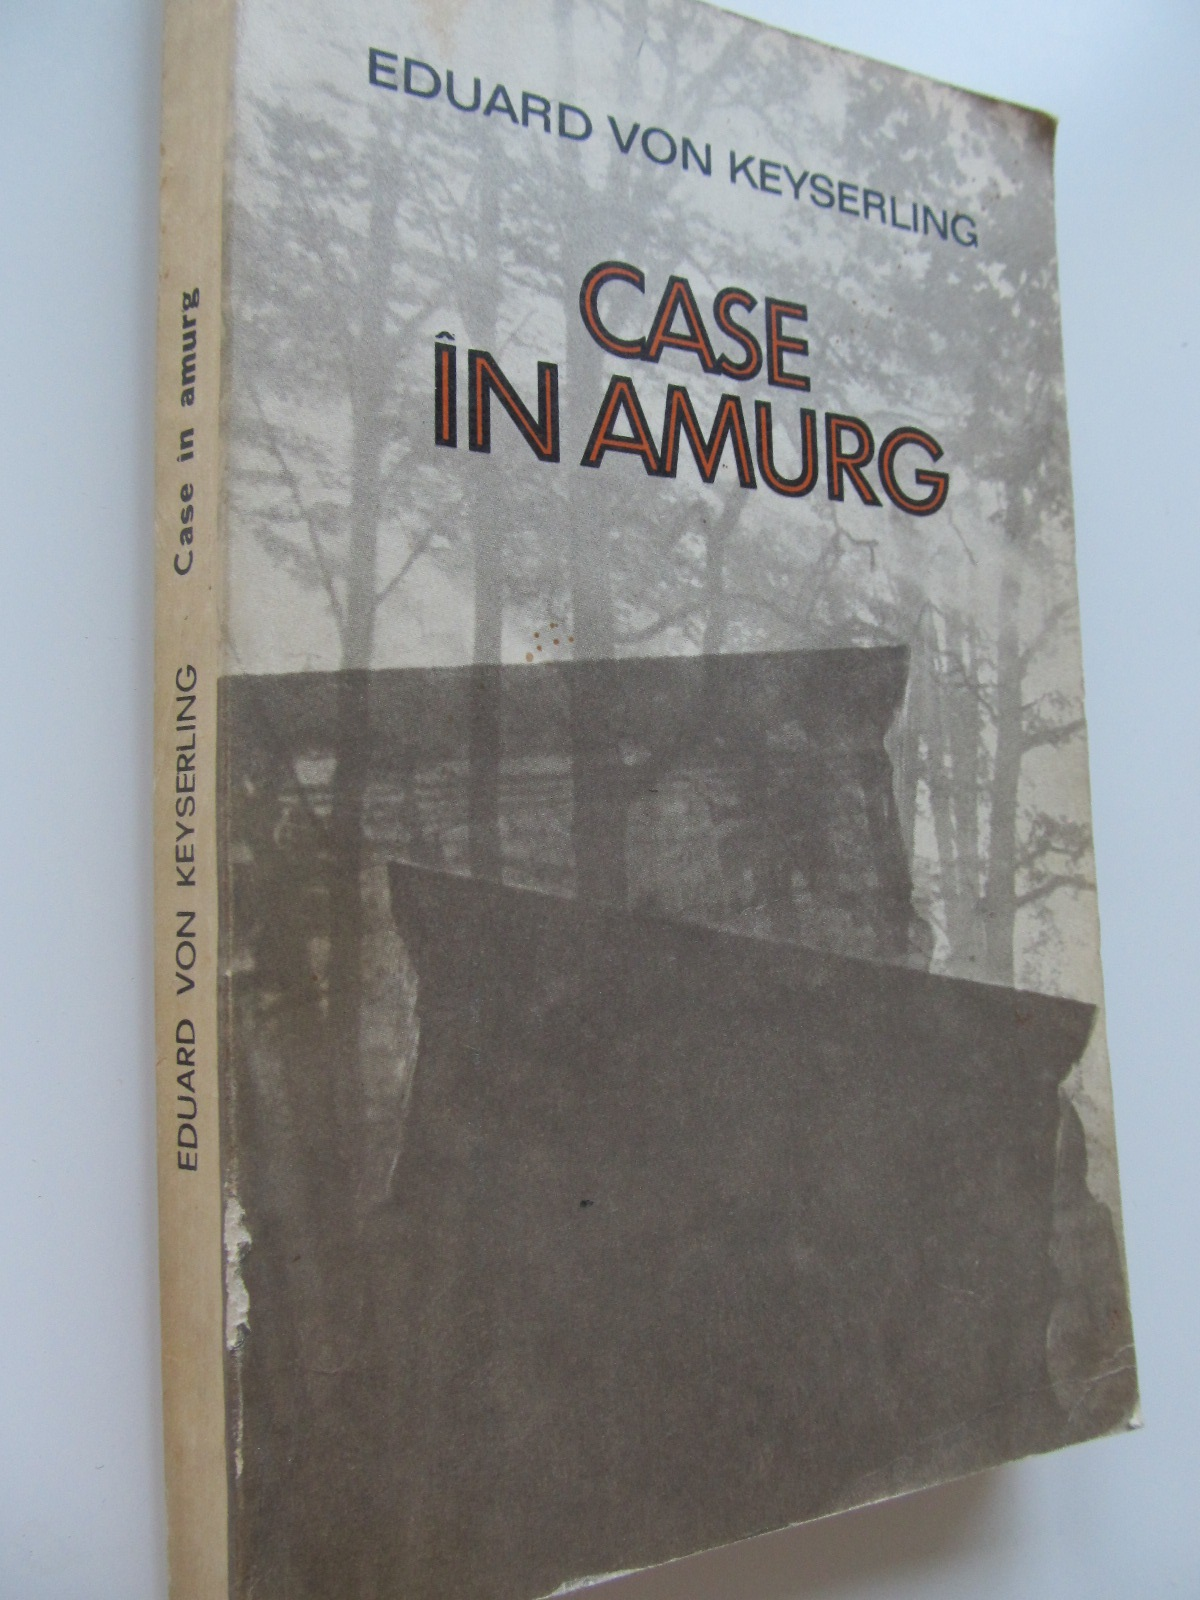 Case in amurg - Eduard von Keyserling | Detalii carte